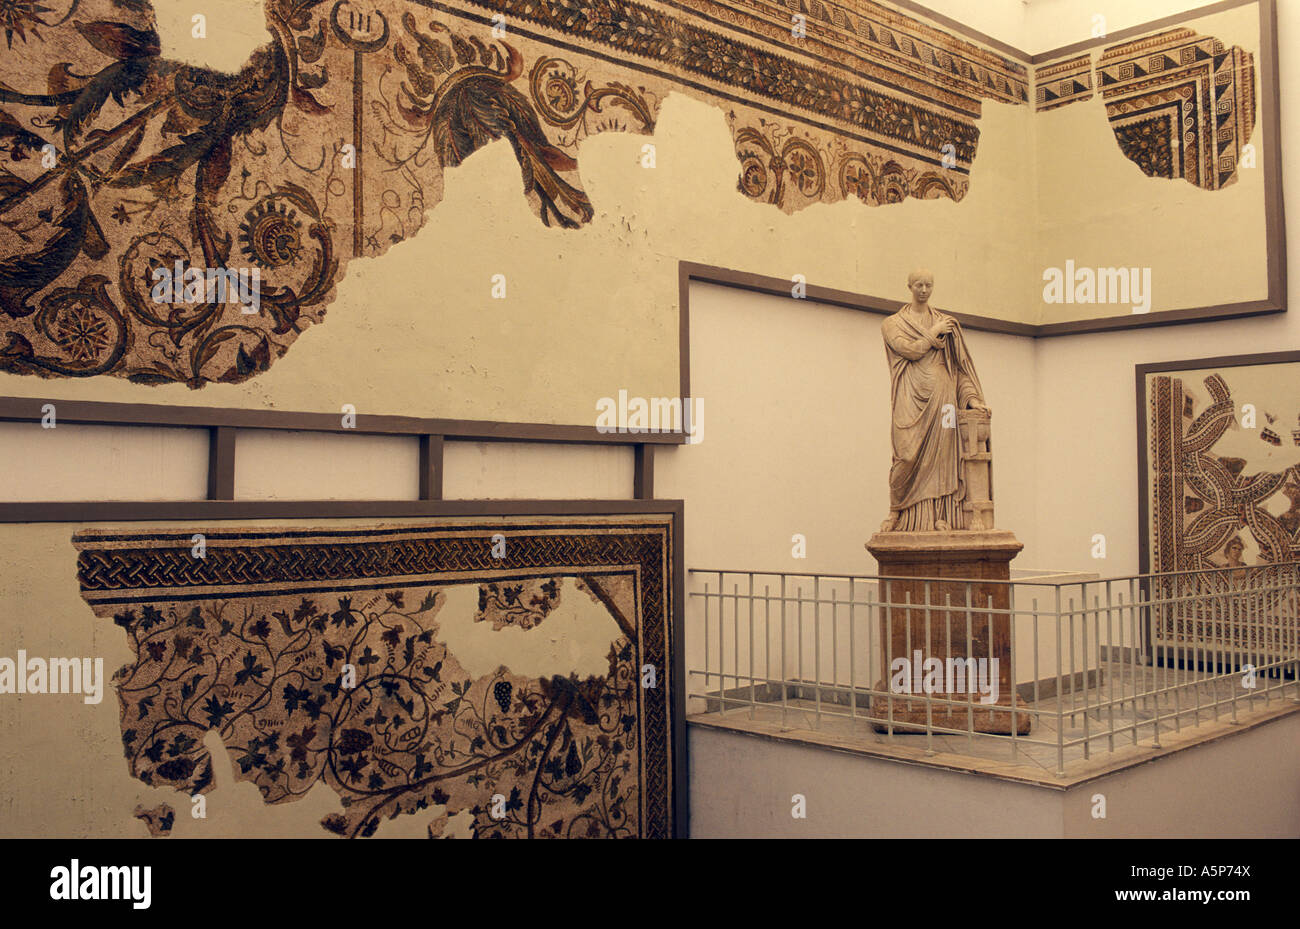 Bardo museum Tunis Tunisia Stock Photo